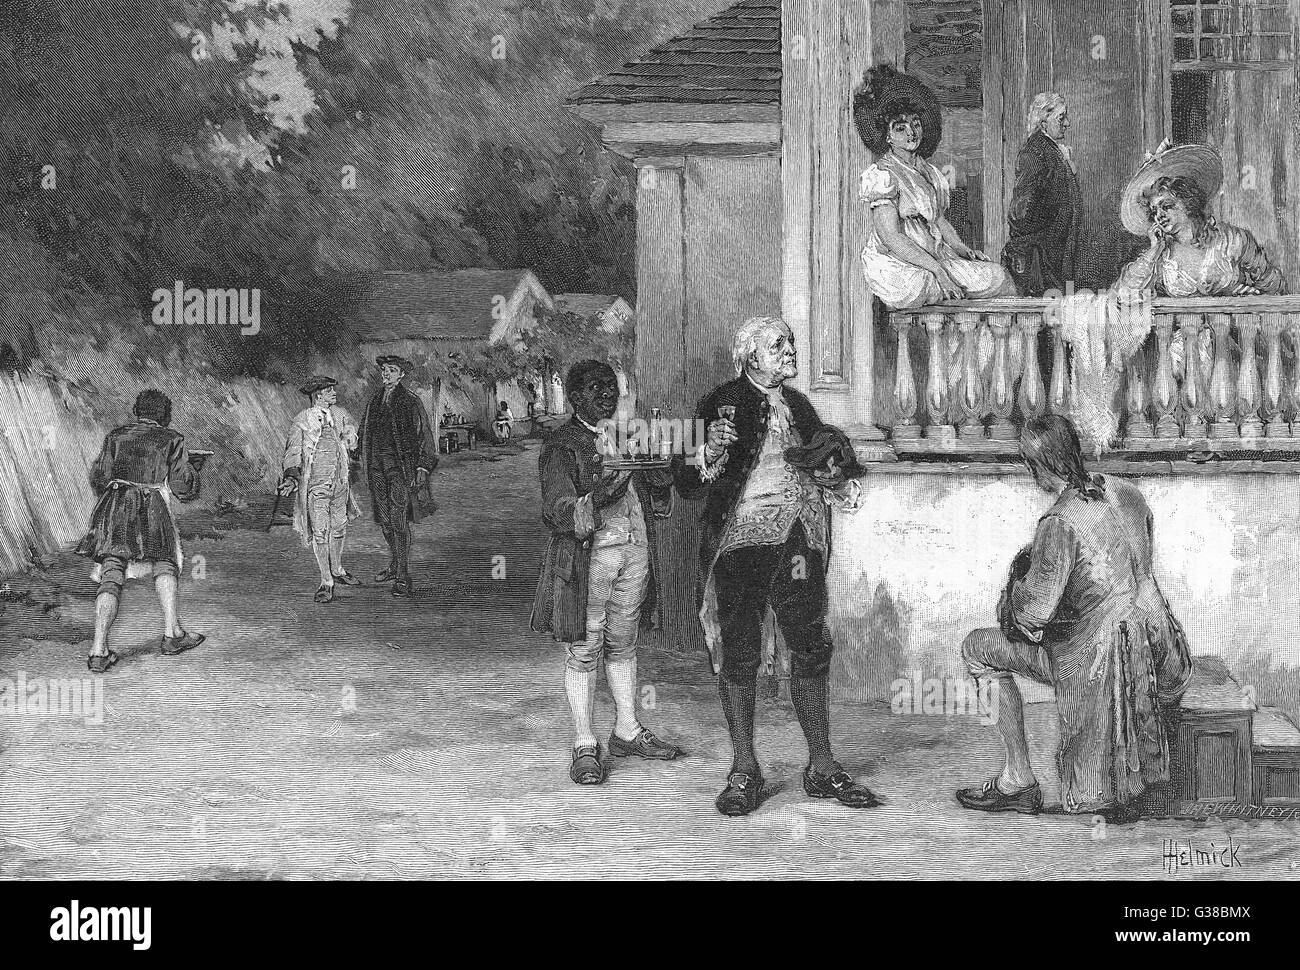 'Kentucky hospitality in the  olden time'        Date: 18th century - Stock Image